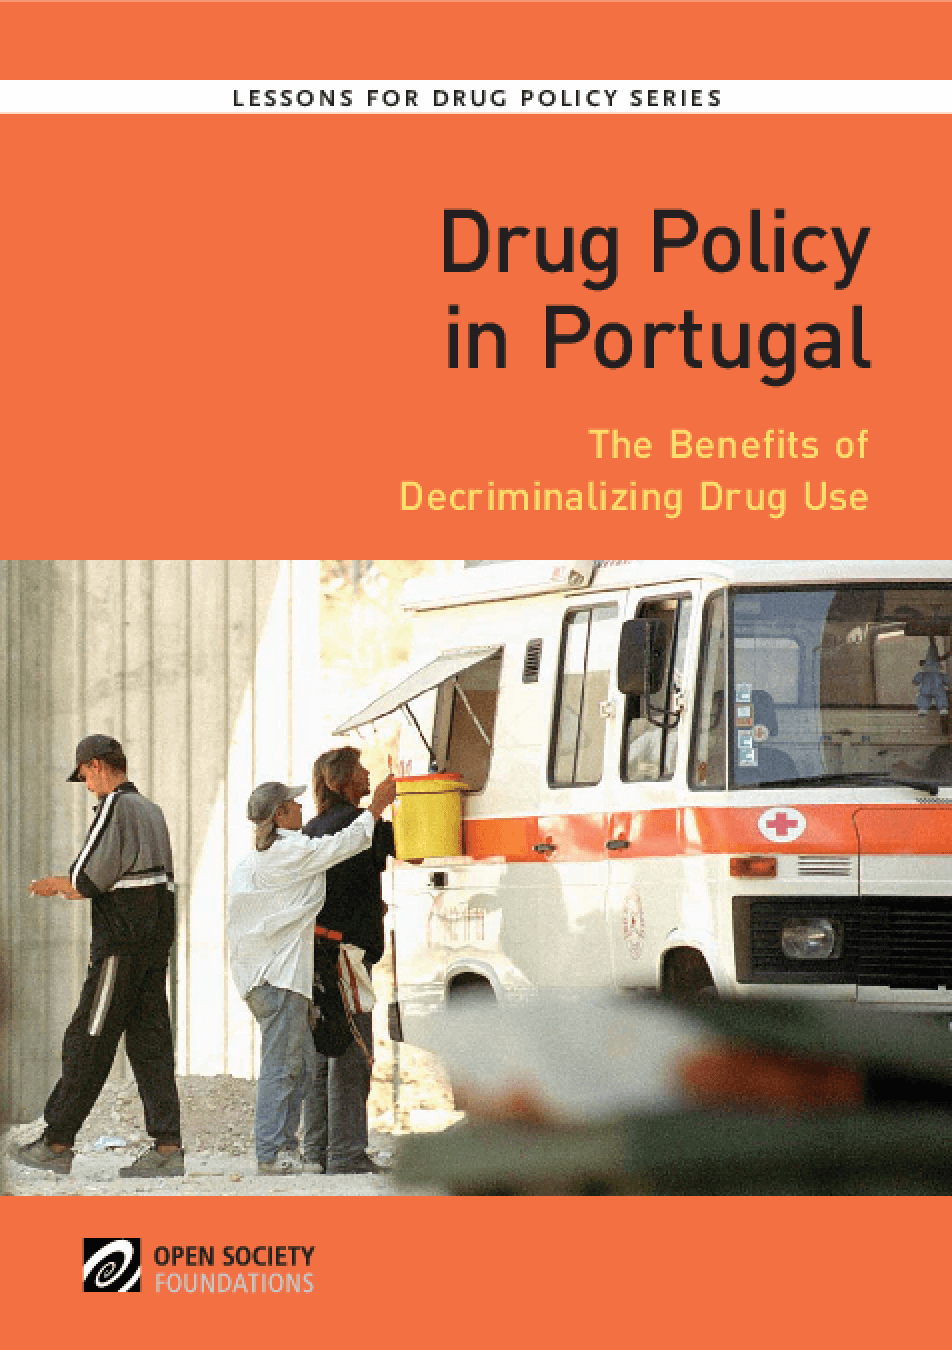 Drug Policy in Portugal: The Benefits of Decriminalizing Drug Use